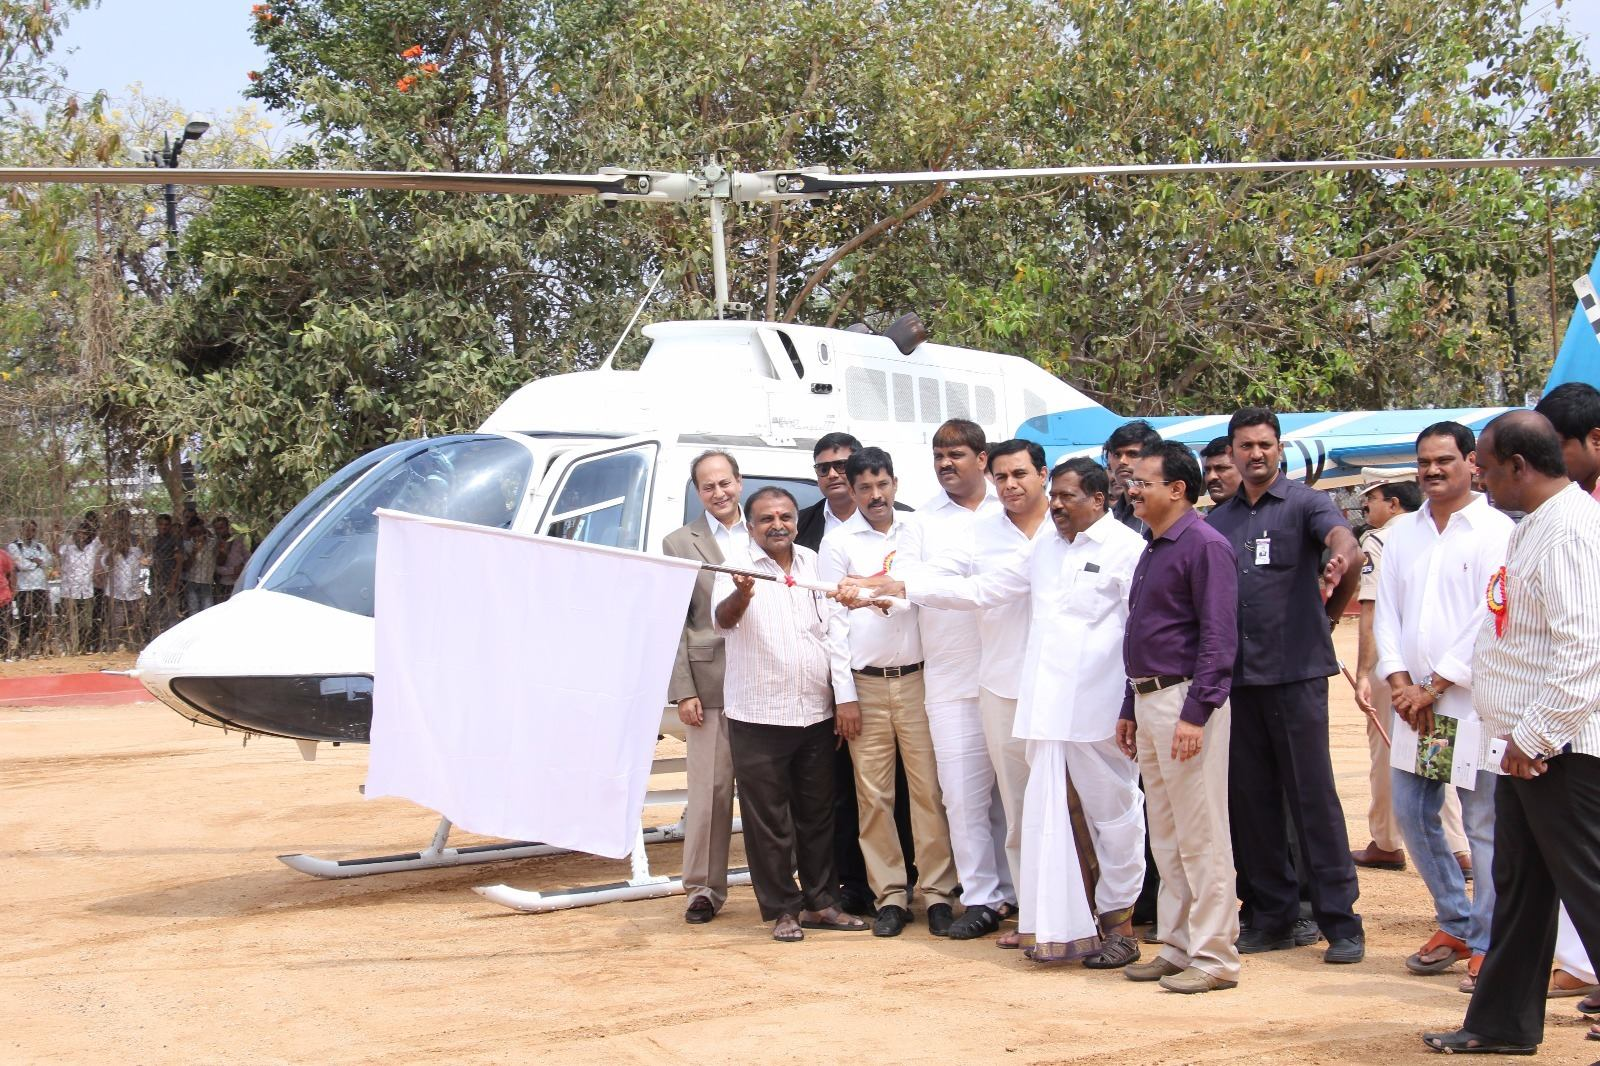 KTR launches Heli Tourism in Hyd